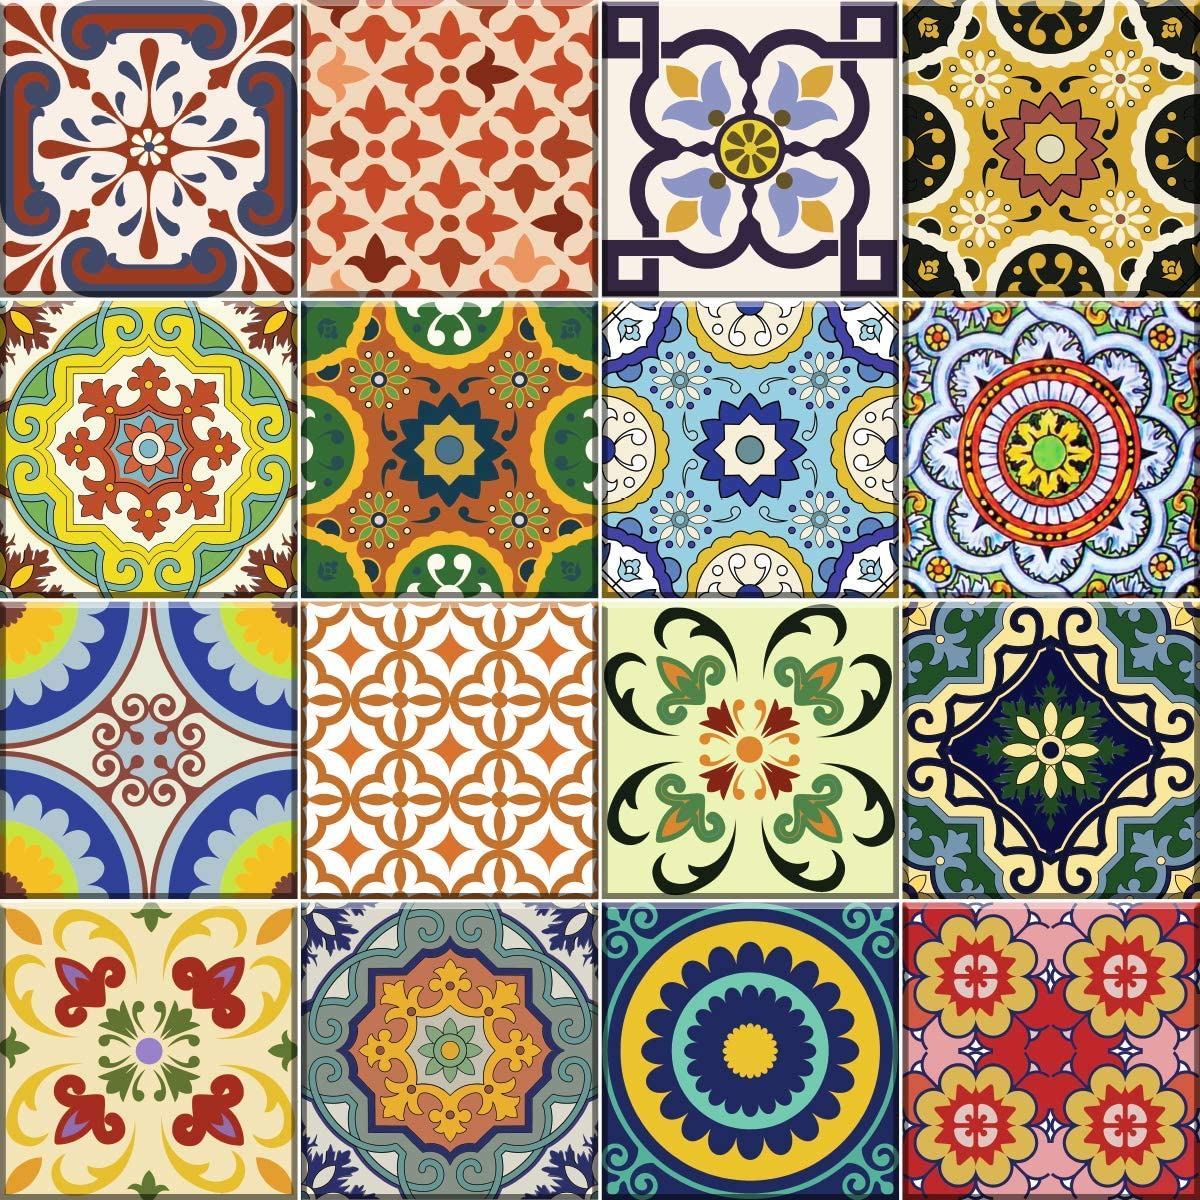 Mi Alma Tile Stickers 24 PC Set Traditional Talavera Tiles Stickers Bathroom & Kitchen Tile Decals Easy to Apply Just Peel & Stick Home Decor 6x6 Inch (Kitchen Tiles Stickers C1)